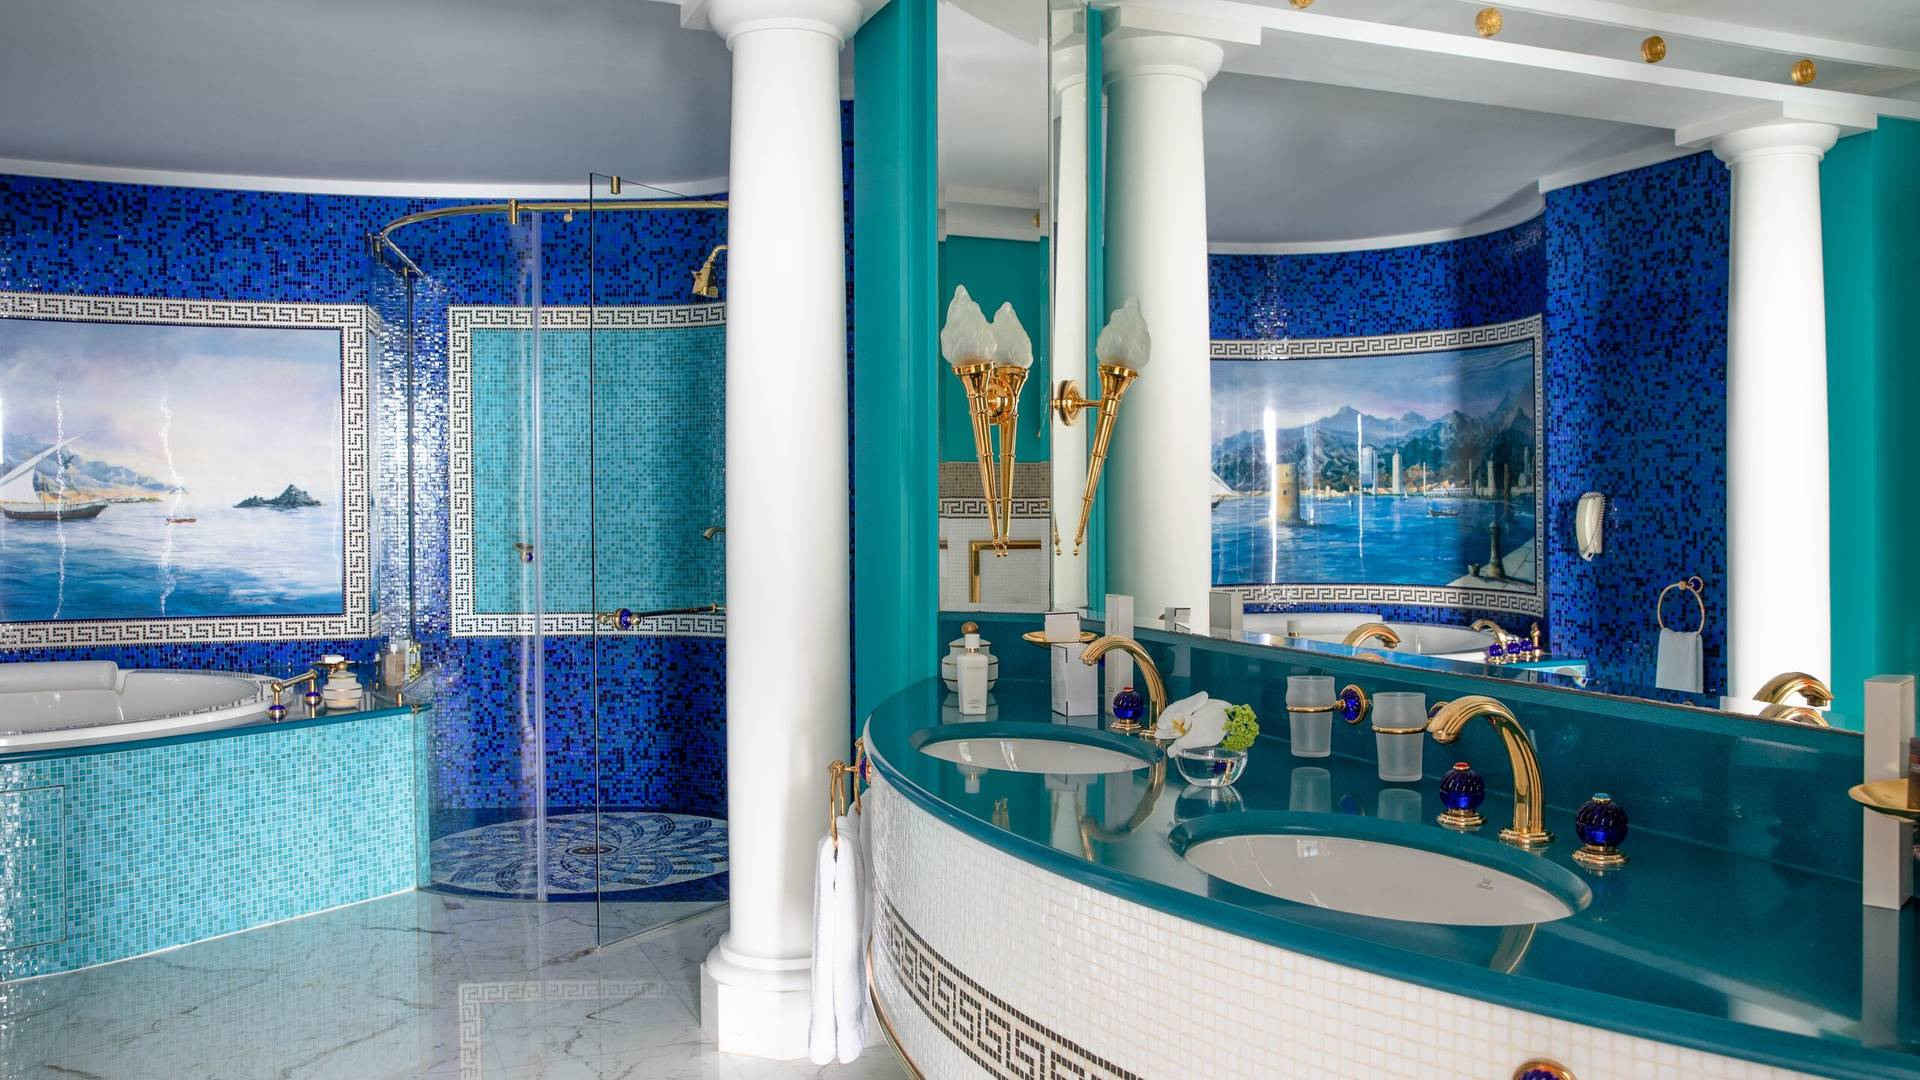 Jumeirah Burj Al Arab two bedroom family suite bathroom